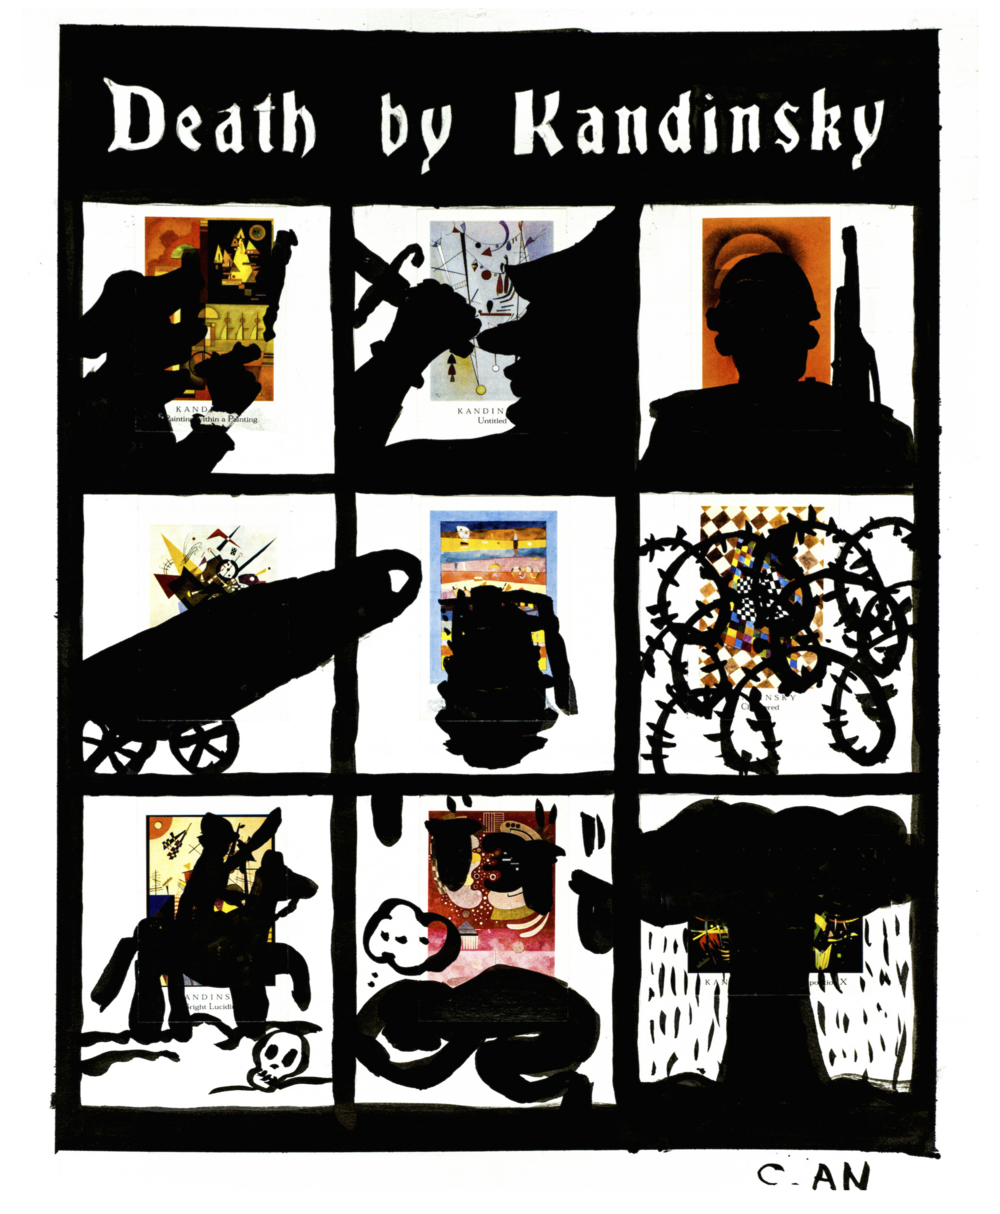 Death by Kandinsky